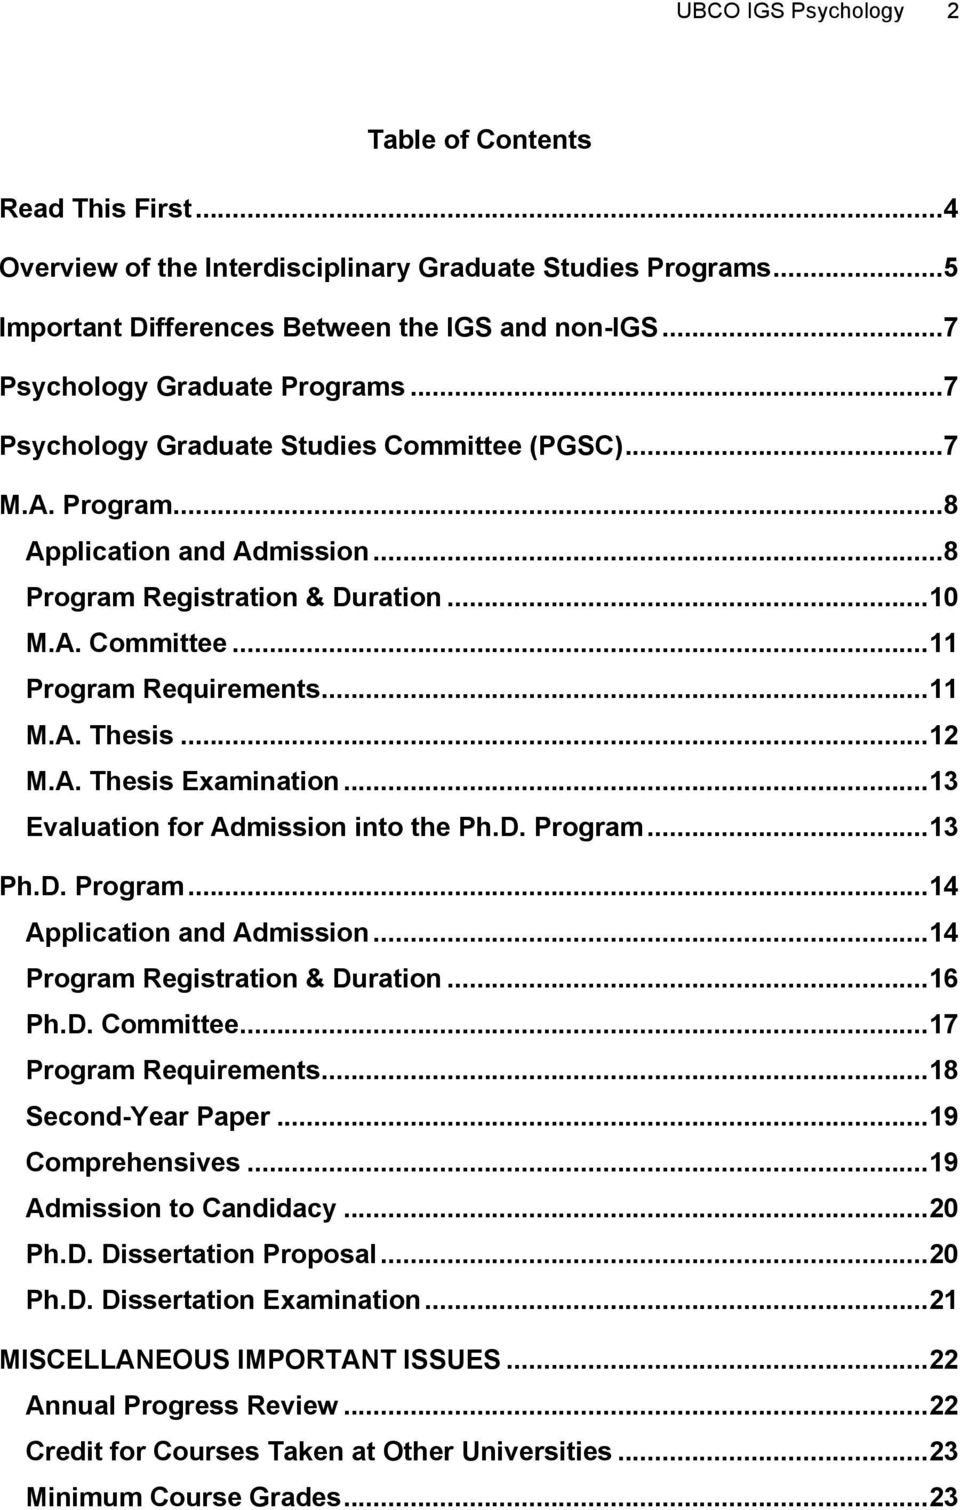 .. 11 M.A. Thesis... 12 M.A. Thesis Examination... 13 Evaluation for Admission into the Ph.D. Program... 13 Ph.D. Program... 14 Application and Admission... 14 Program Registration & Duration... 16 Ph.